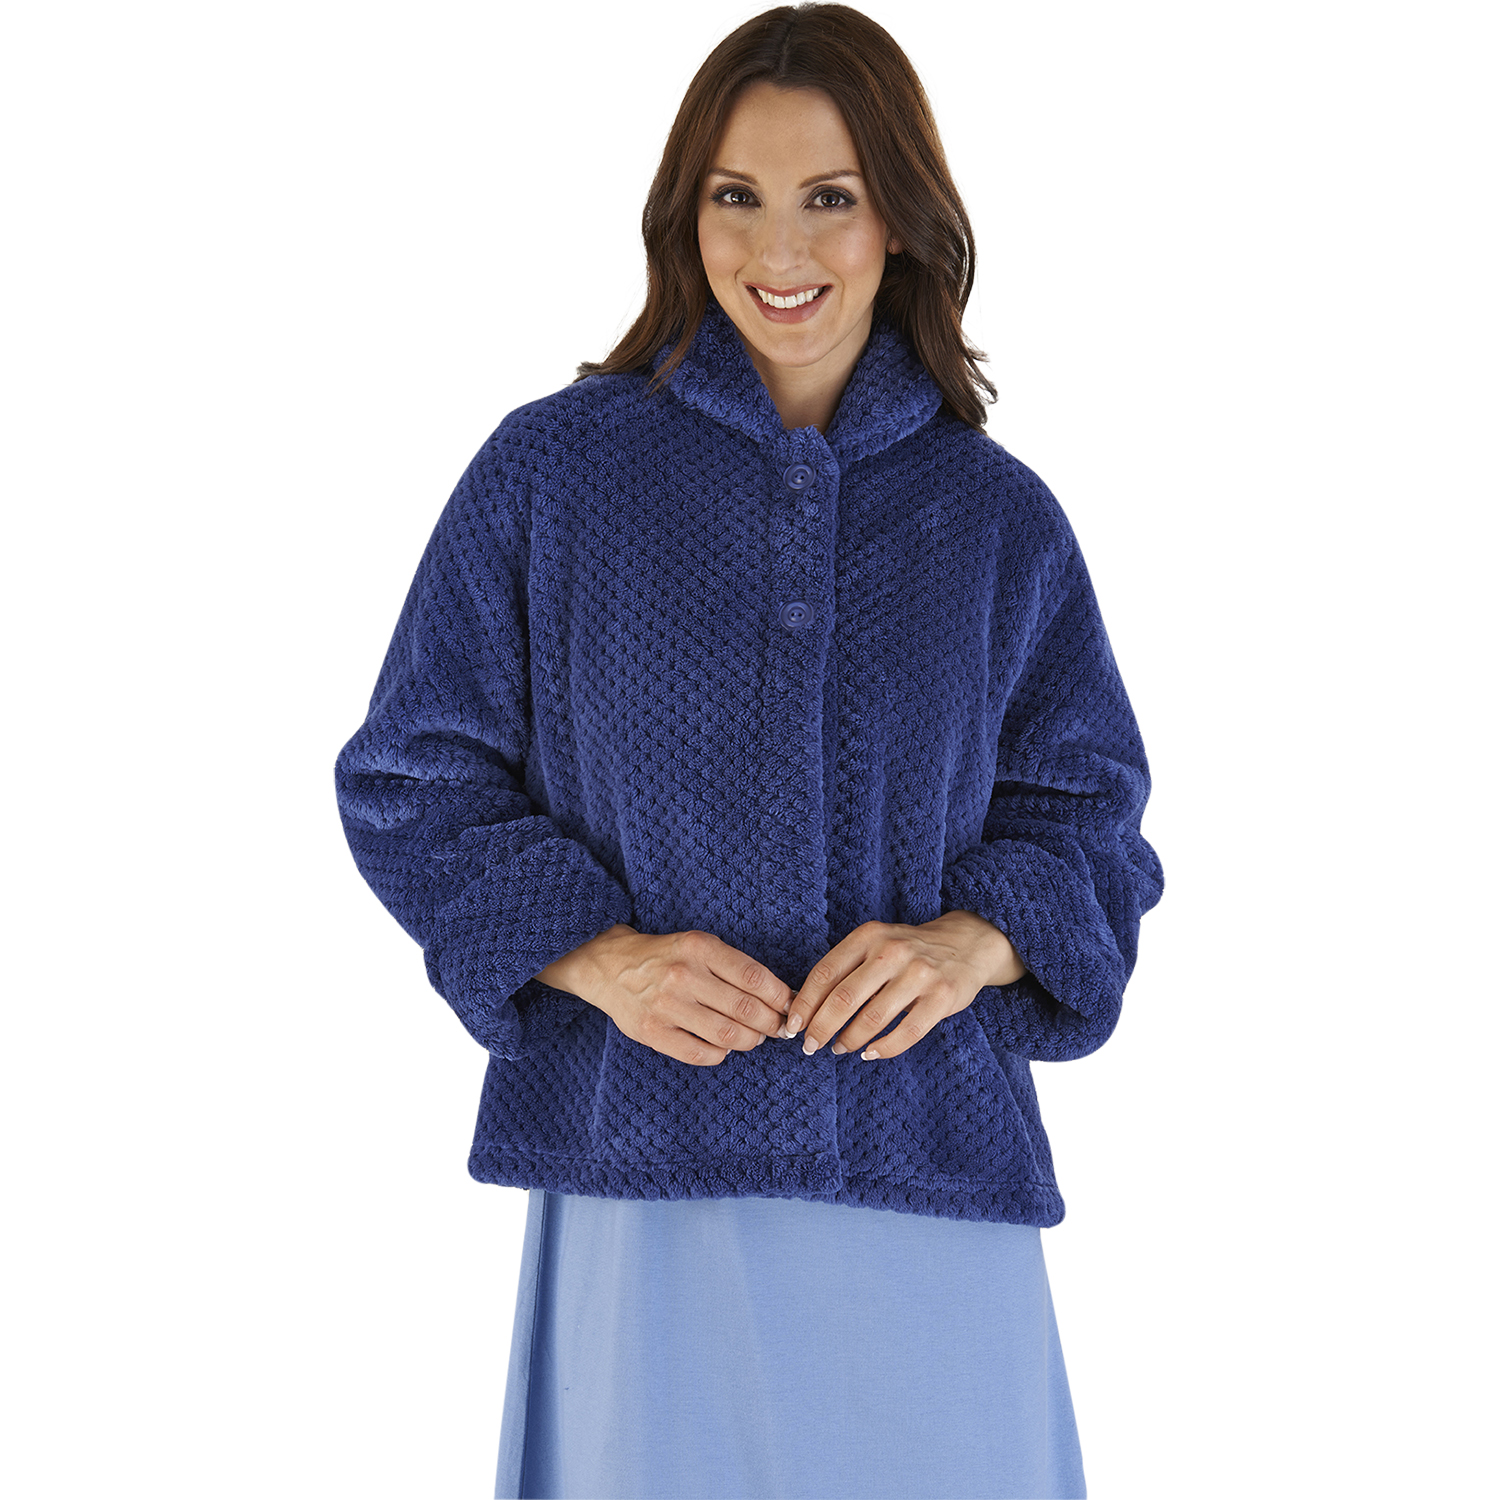 Stunning Flannel Fleece Ladies Bed Jacket. This jacket is made from a beautiful soft, velvet-like flannel fleece luxury fabric. % Luxury Flannel Fleece. I ntricate Embossed pattern throughout, whic Camille Womens Nightwear Ivory Supersoft Fleece Button Up Bed Jacket Pyjama Top.